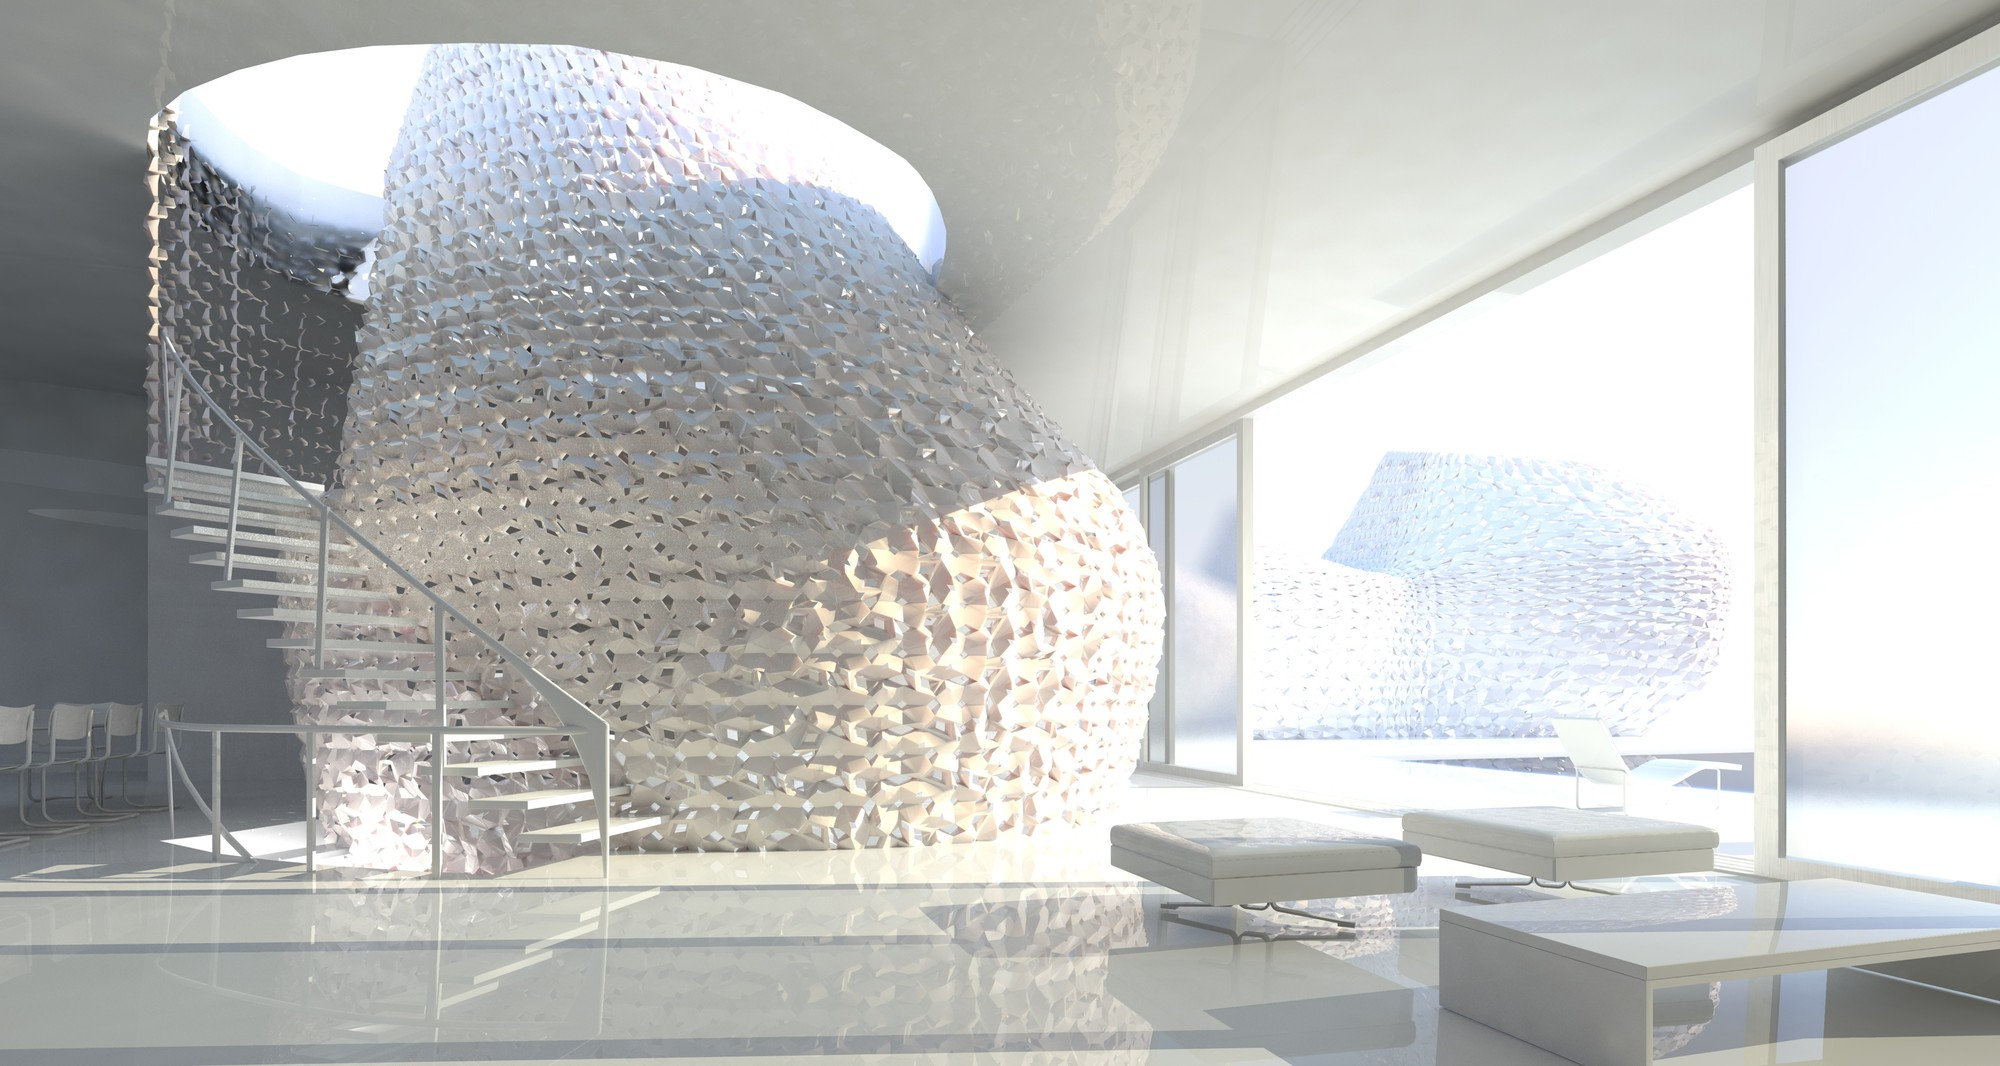 Emerging Objects Design 3D Printed Salt House